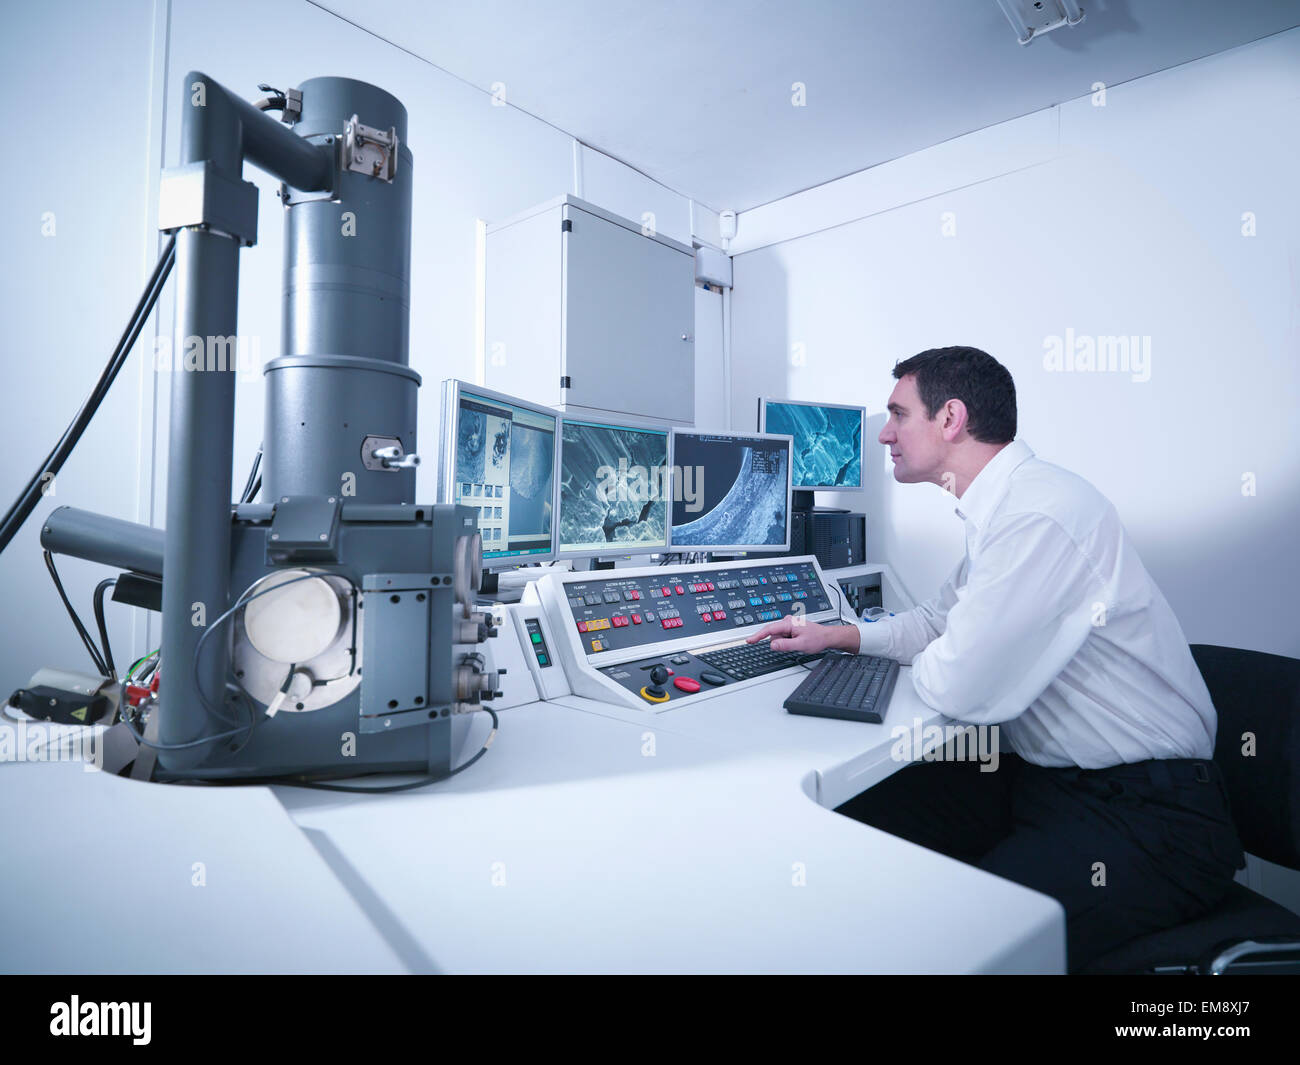 Metallurgist working with electron microscope in automotive test facility - Stock Image